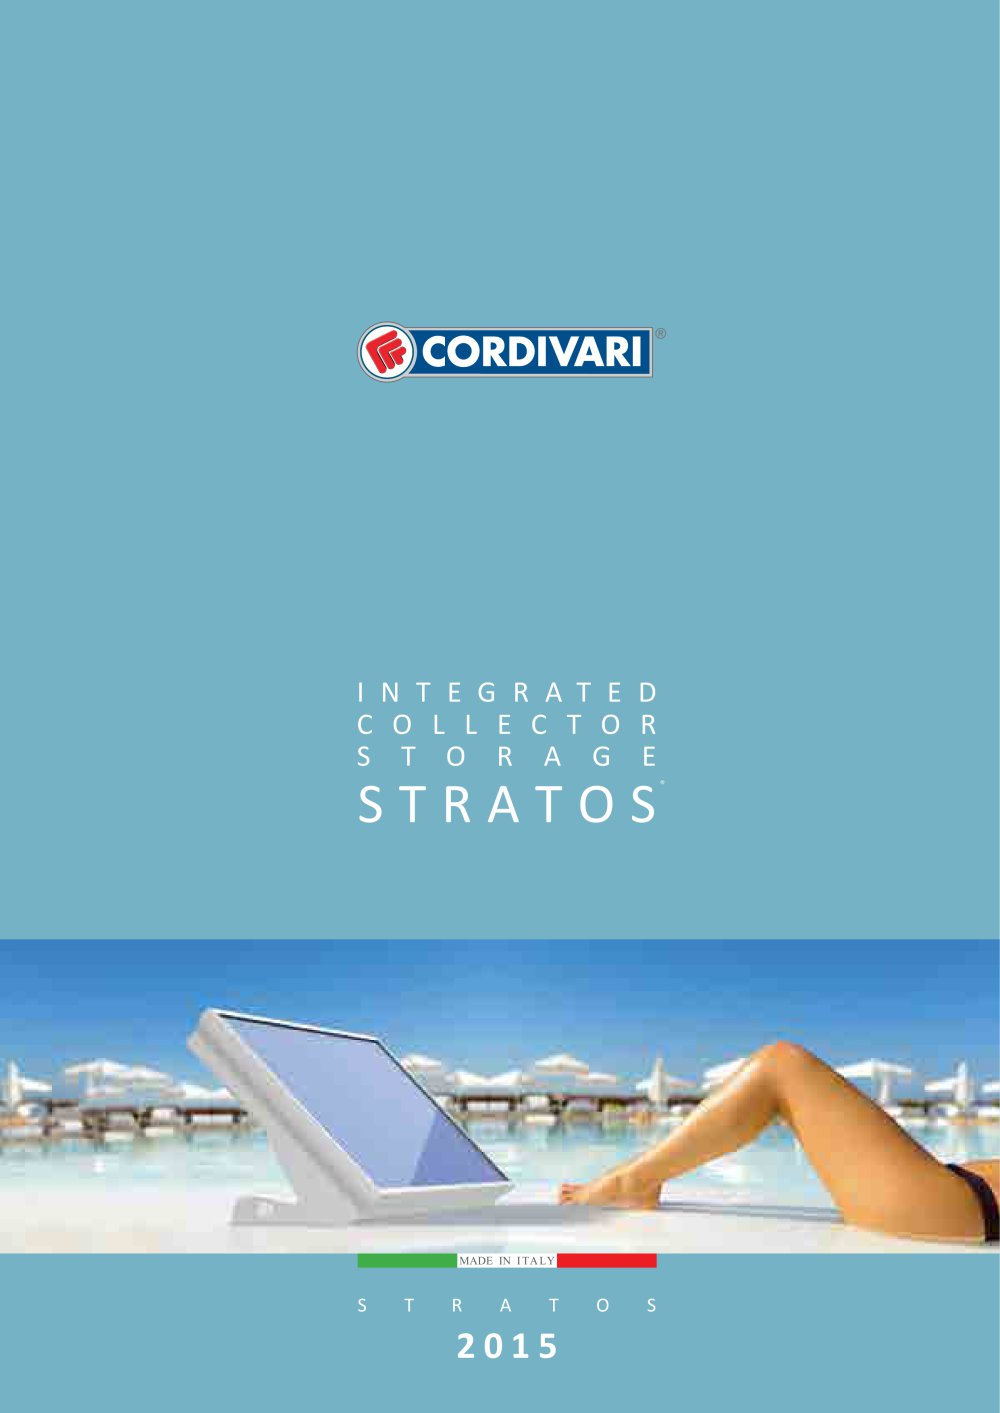 SISTEMA STRATOS   1 / 16 Pages